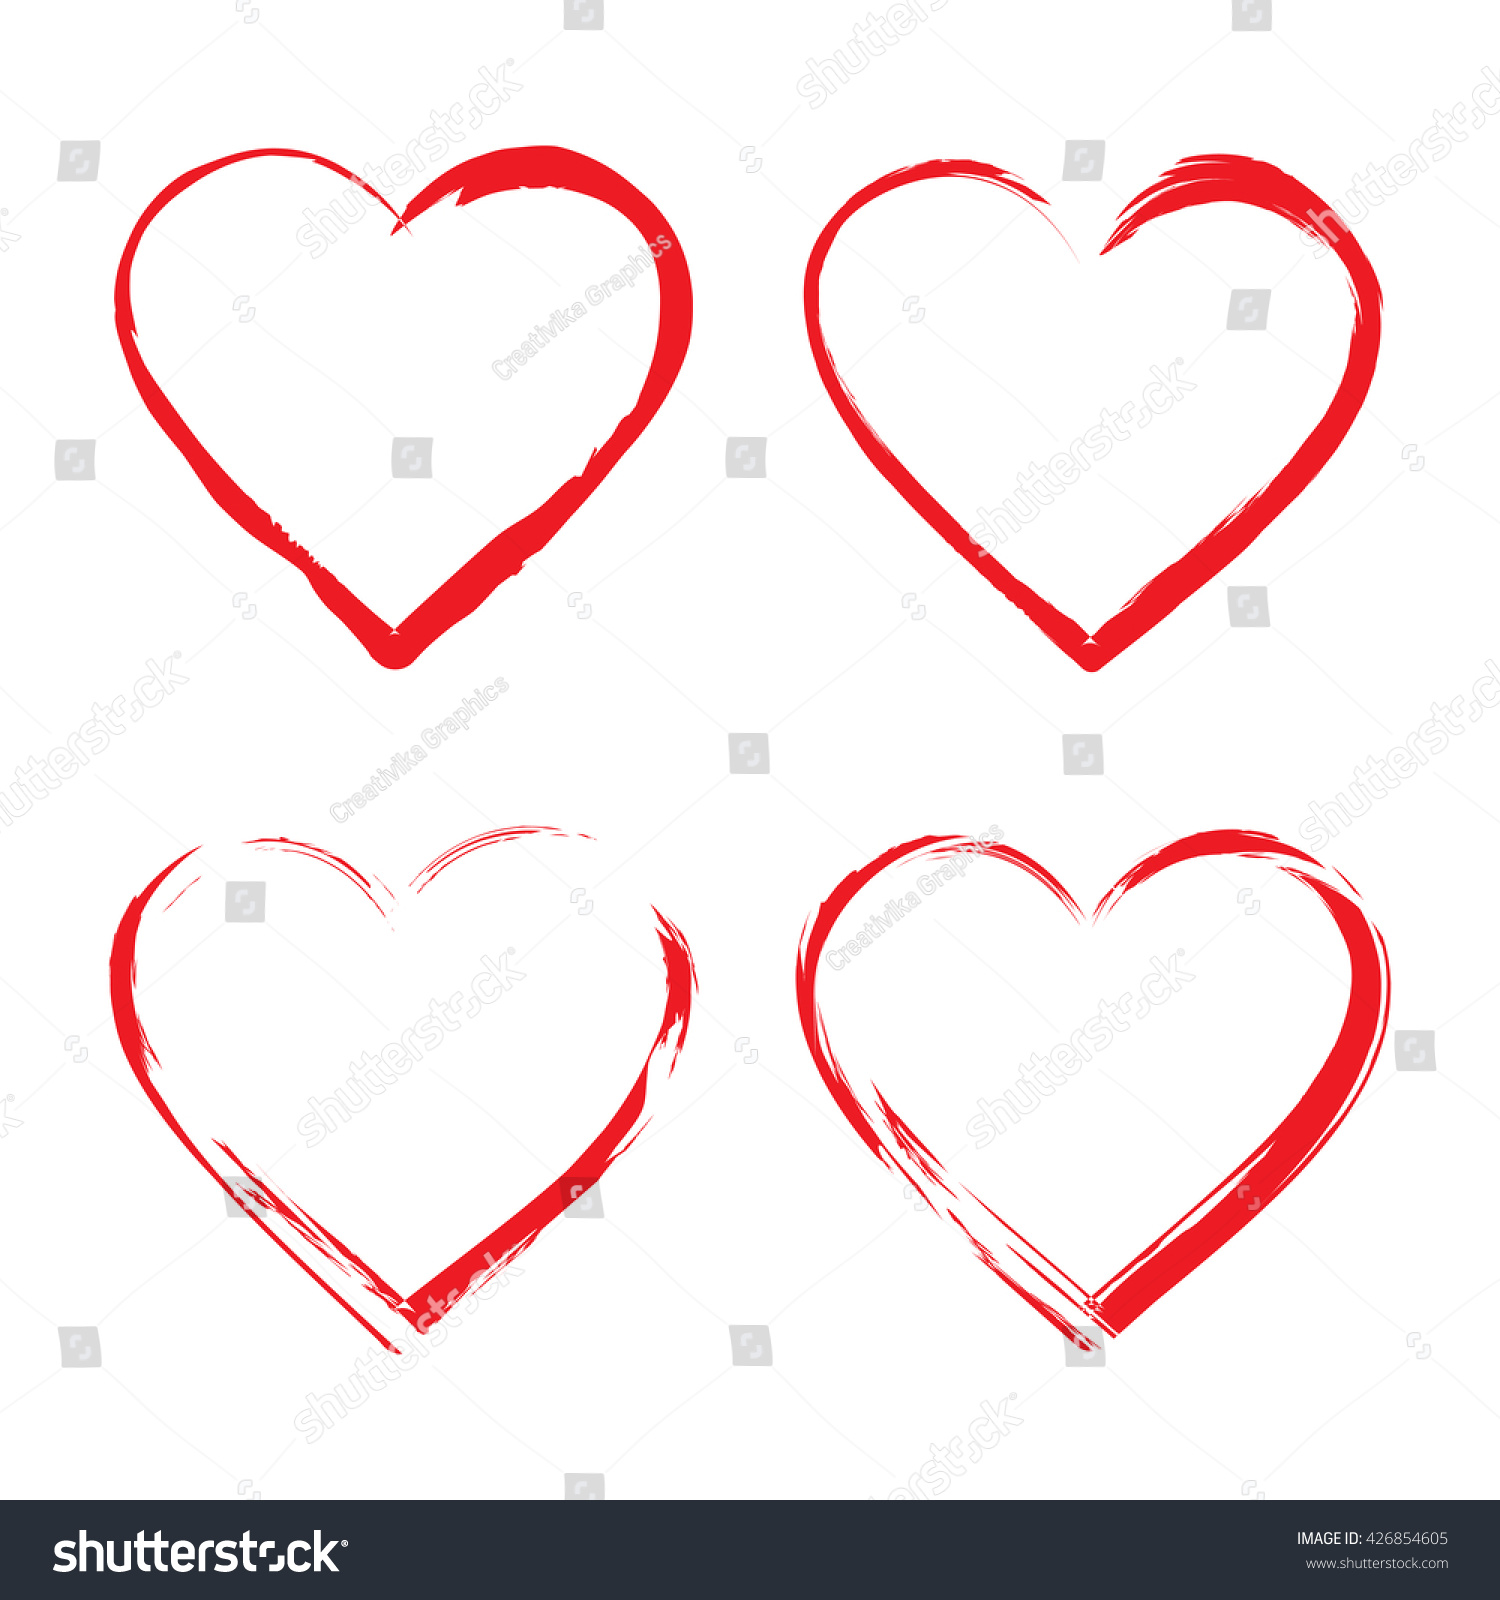 Set heart icons red hearts symbols stock vector 426854605 set of heart icons red hearts symbols drawn by brush isolated on white background biocorpaavc